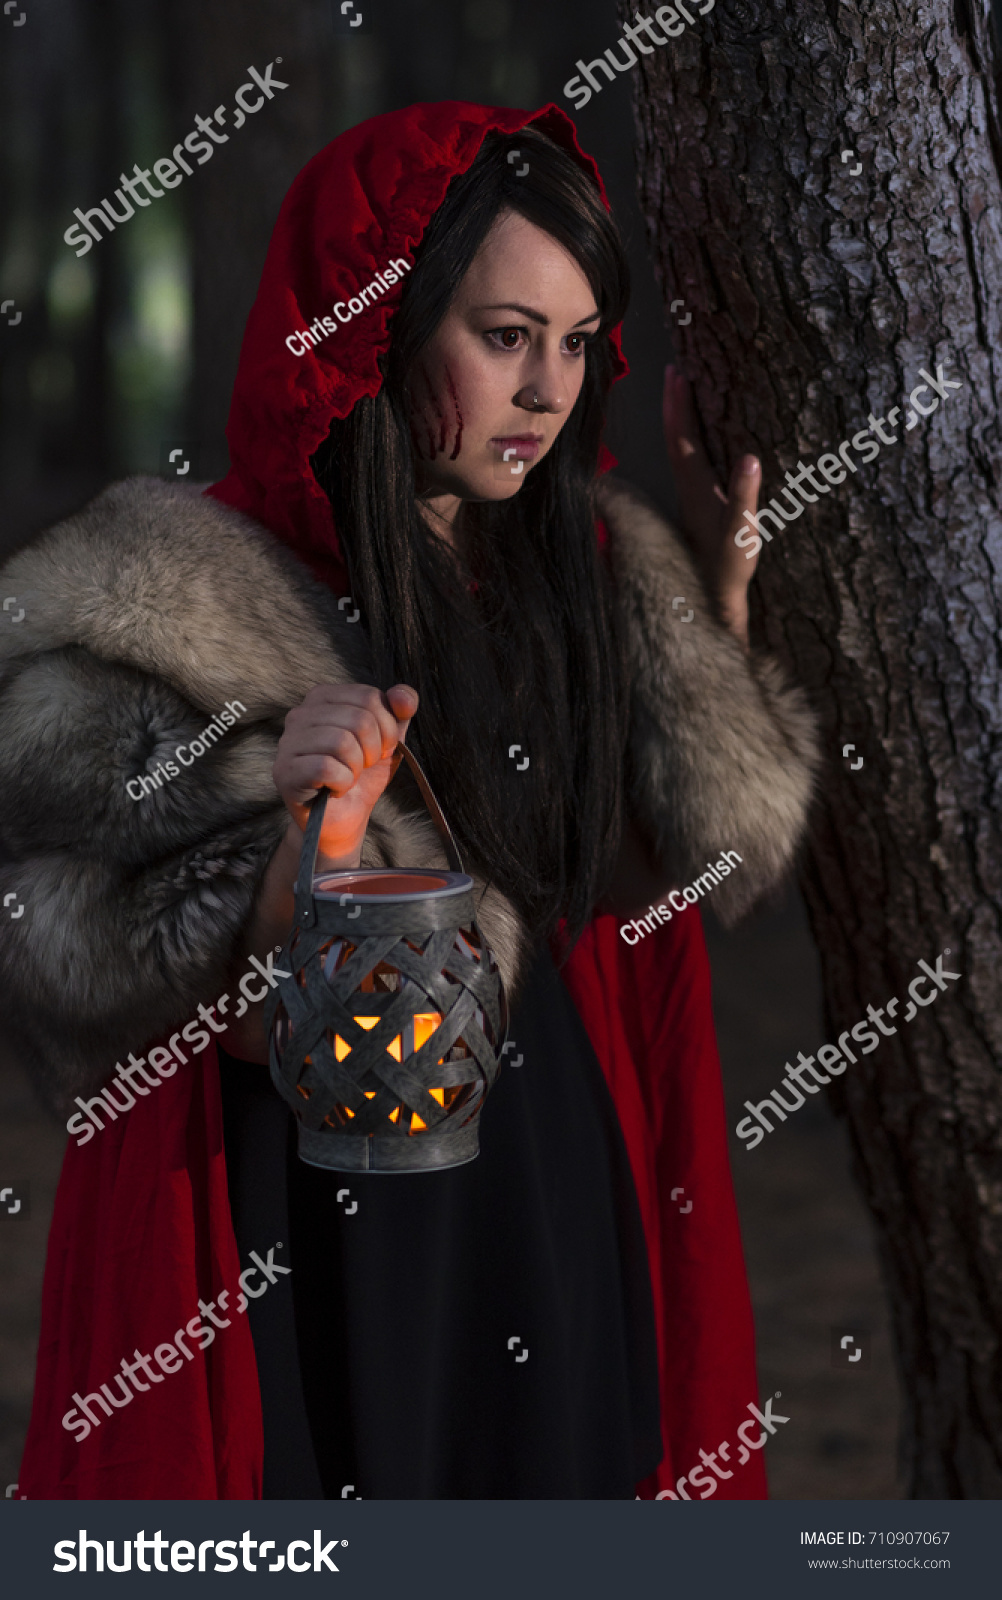 f51ab1a3a9 Little Red Riding Hood. A slightly darker take on the character where she  is the evil one hunting the wolf for its skin. Female model with black  hair